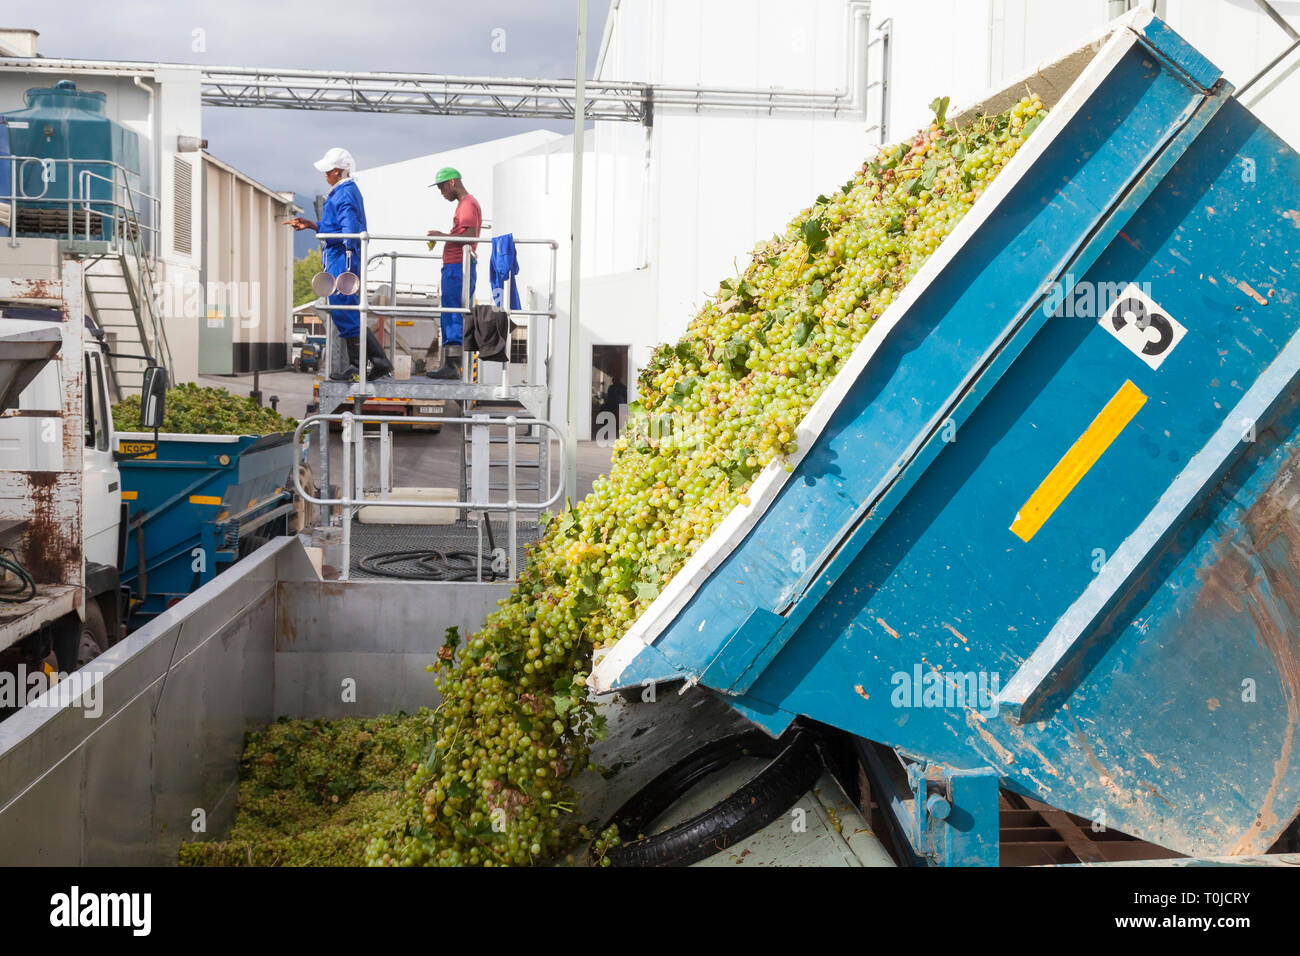 Grape Harvest Robertson, Robertson Wine Valley, Western Cape Winelands, South Africa. Truck delivering hanepoot grapes Roodezandt Cellars - Stock Image